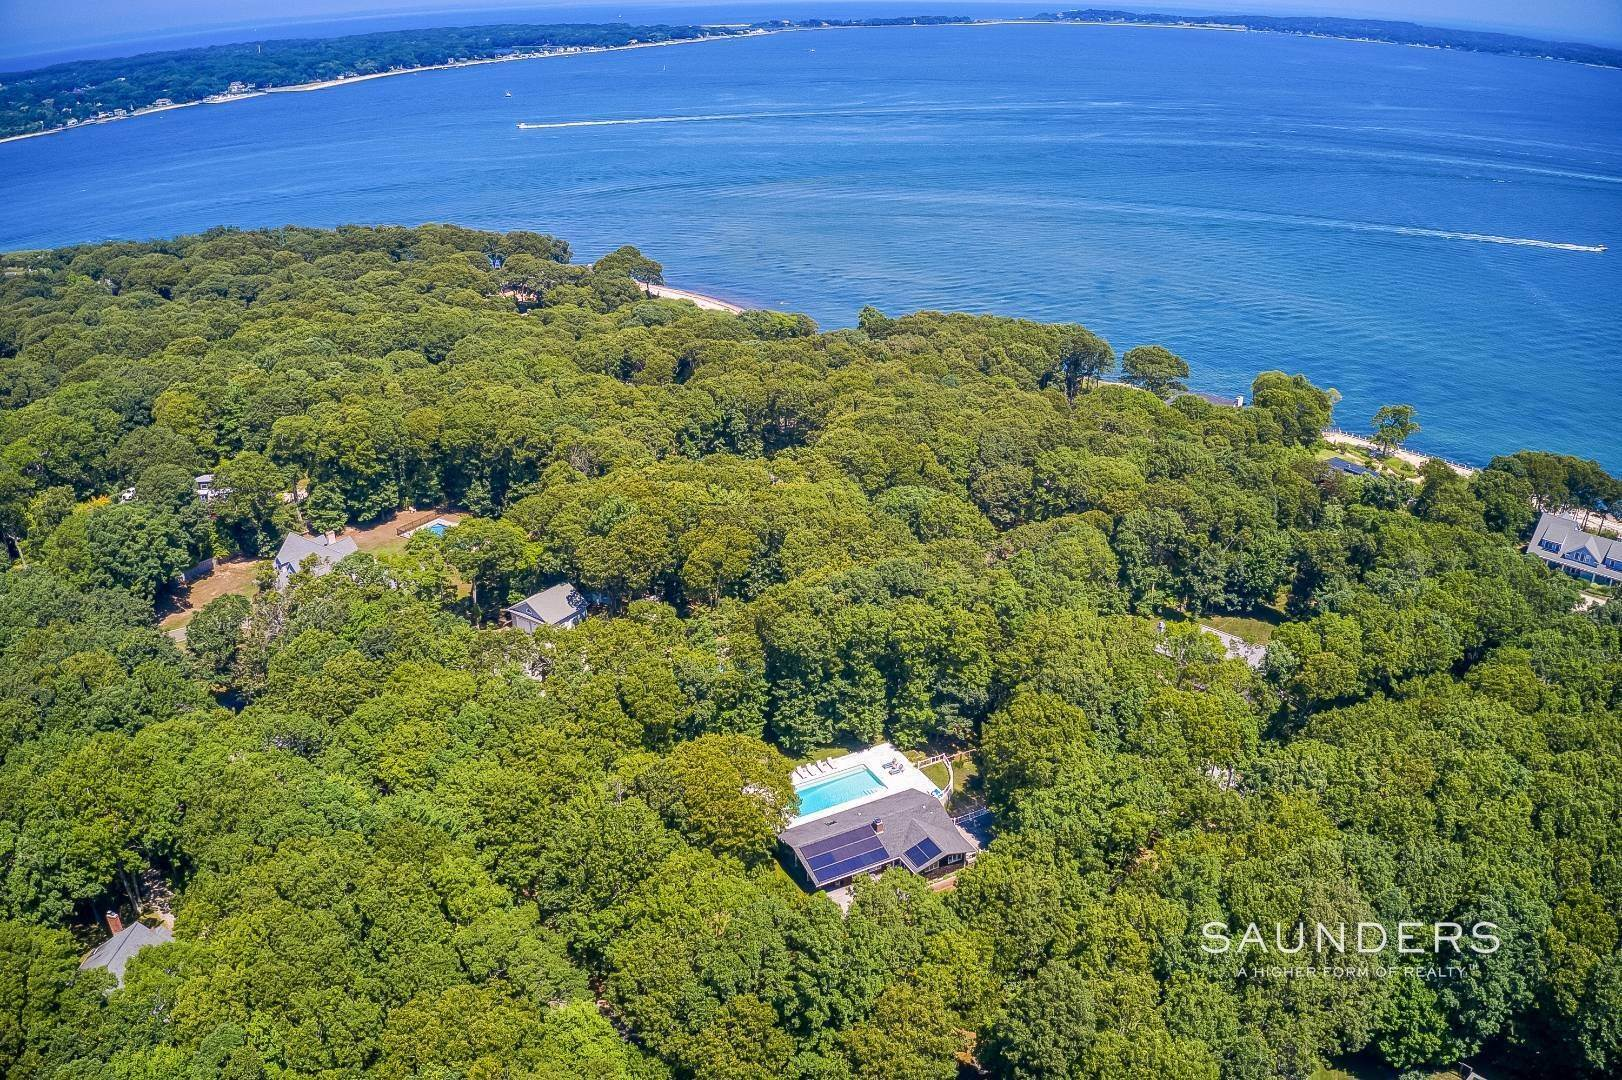 Single Family Homes for Sale at Shelter Island Resort Style Retreat With Pool Near Beach 8 Hay Beach Road, Shelter Island Heights, Shelter Island, NY 11964